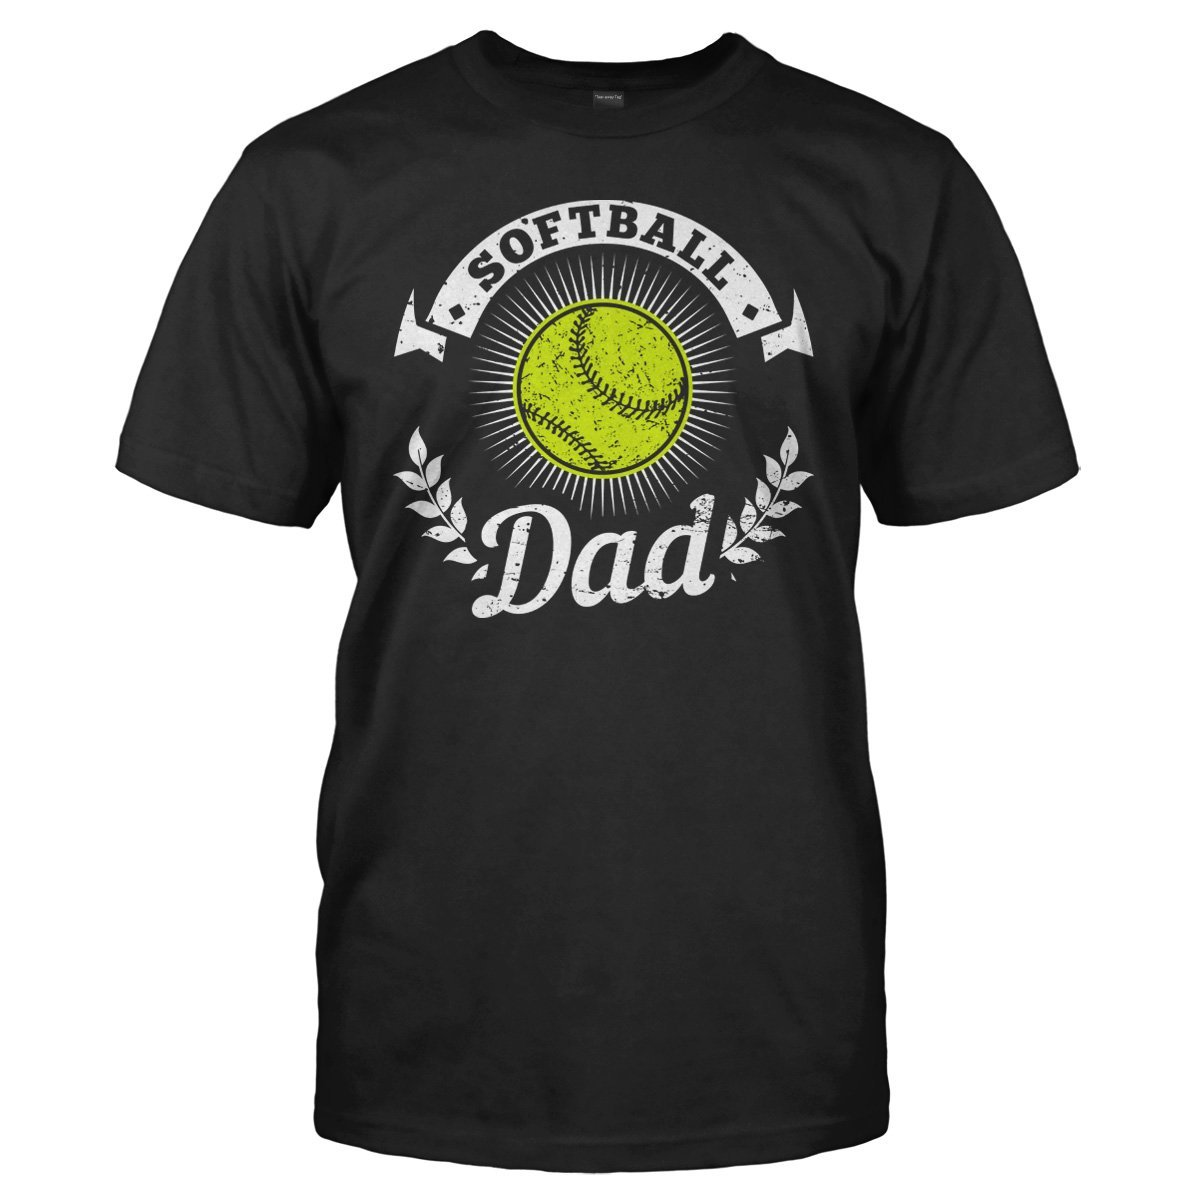 Softball Dad - T Shirt